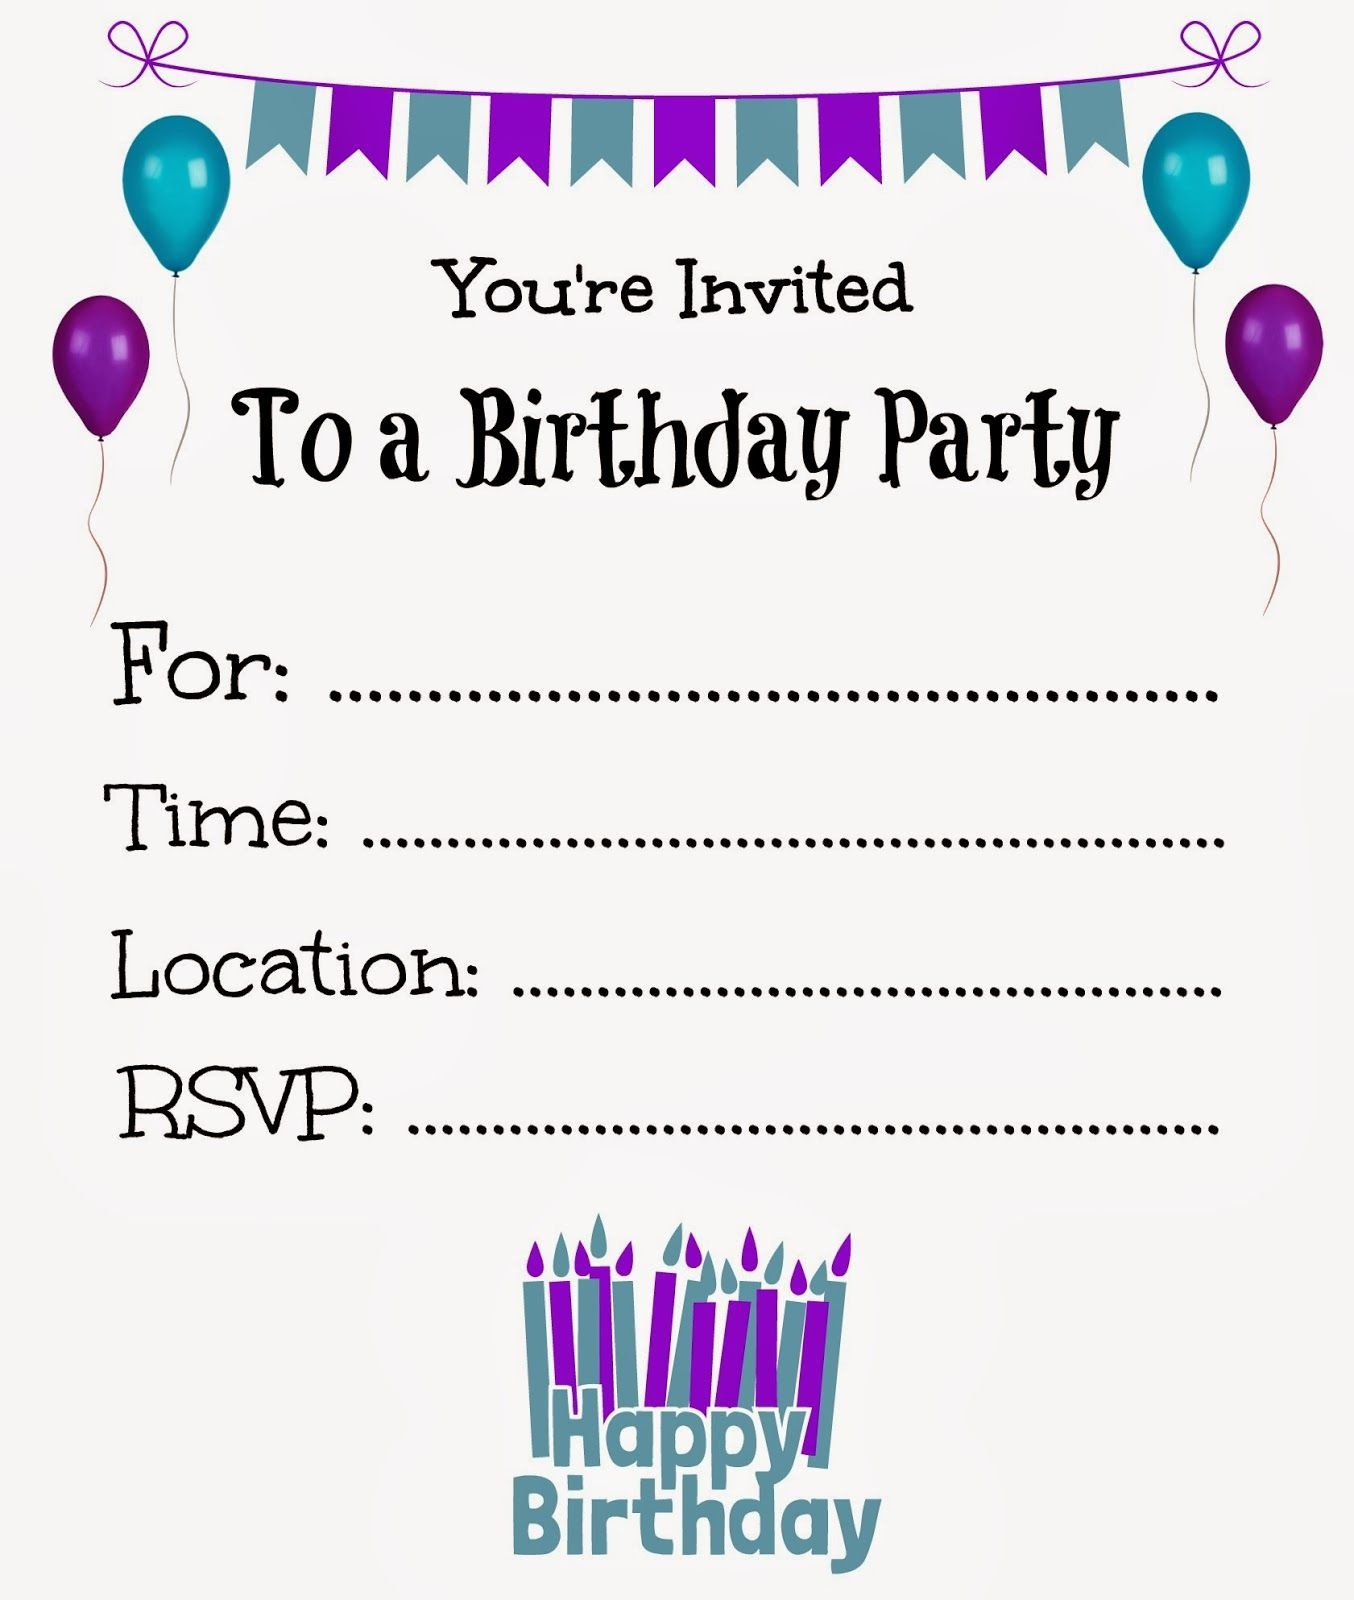 Free Printable Birthday Invitations For Kids #freeprintables - Free Printable Birthday Invitation Templates